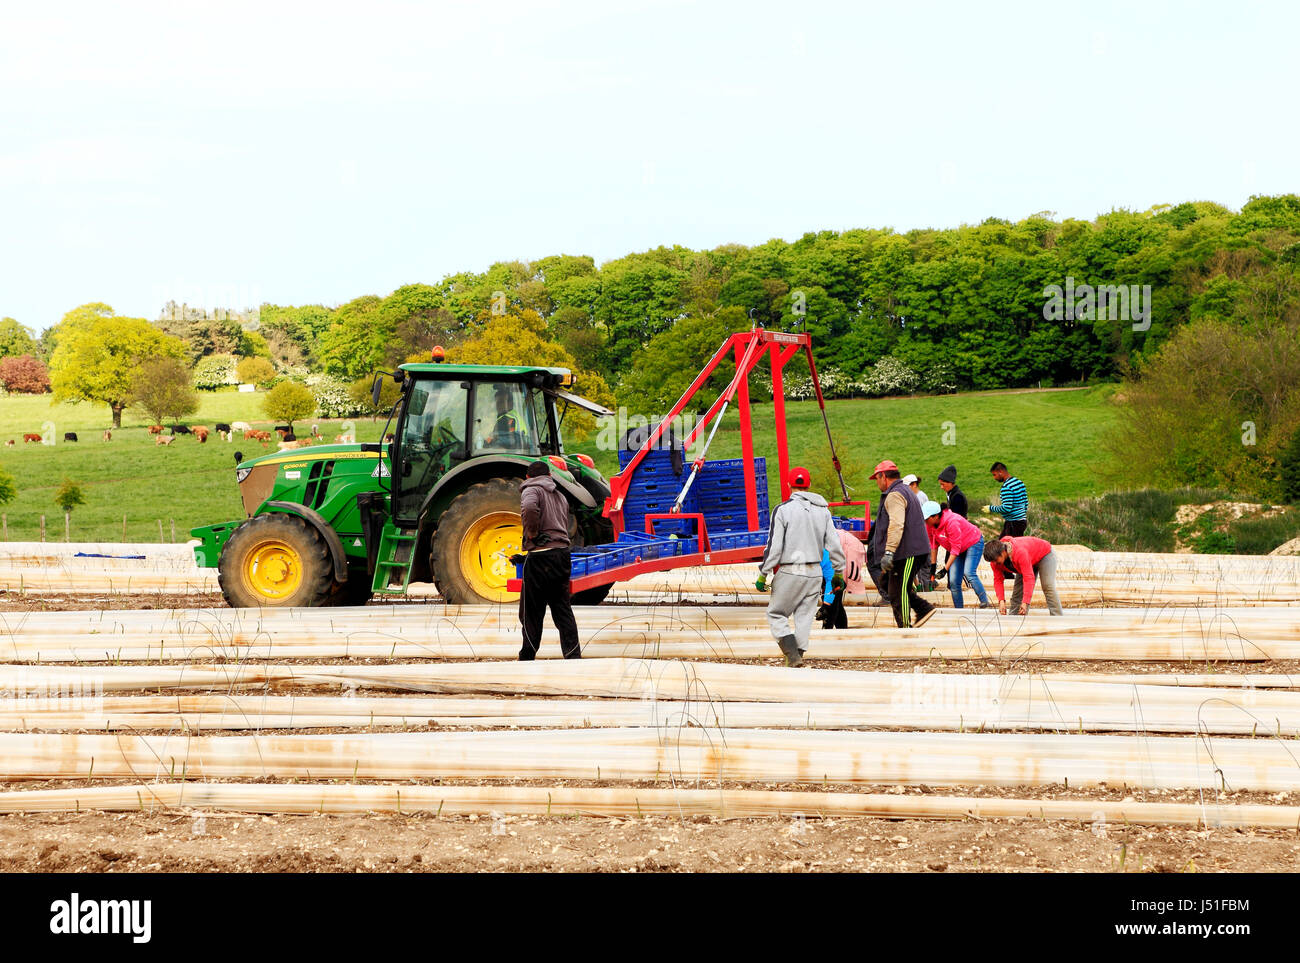 Immigrant casual agricultural labourers, workers, from Romania, Bulgaria, removing polythene tunnels, asparagus - Stock Image